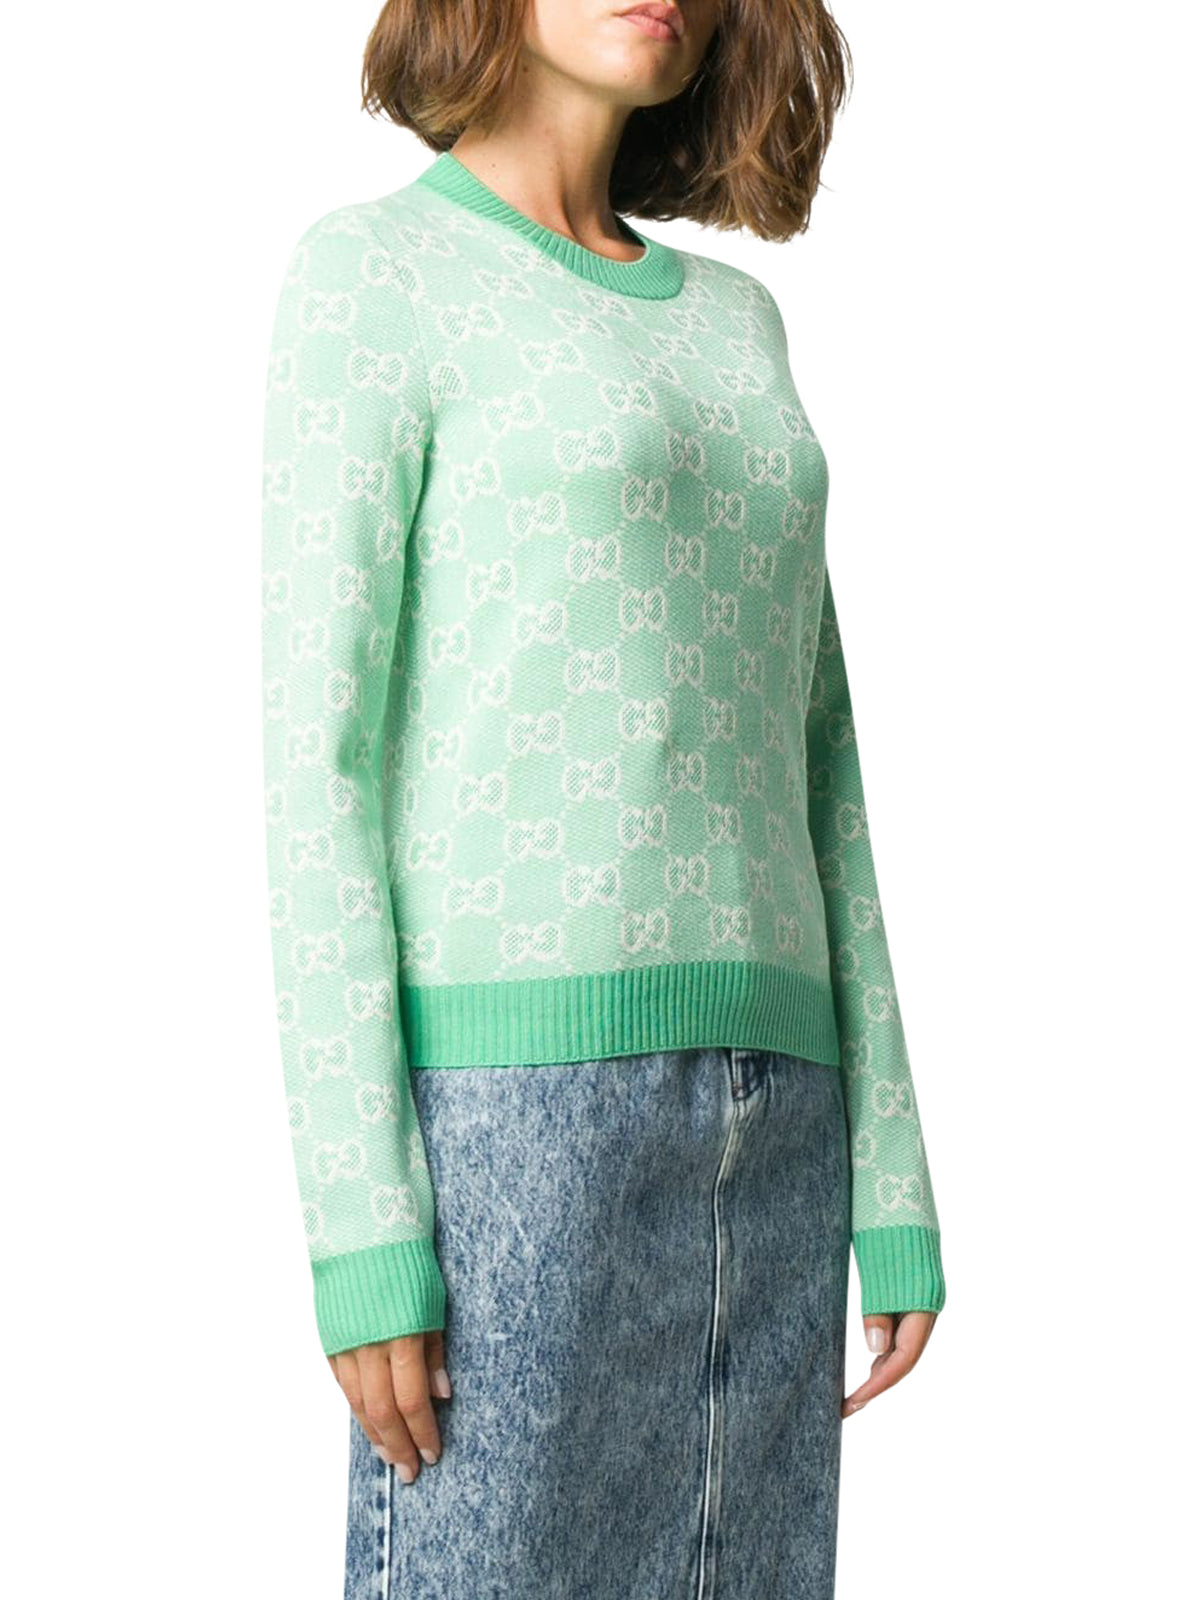 GG cotton wool piquet sweater